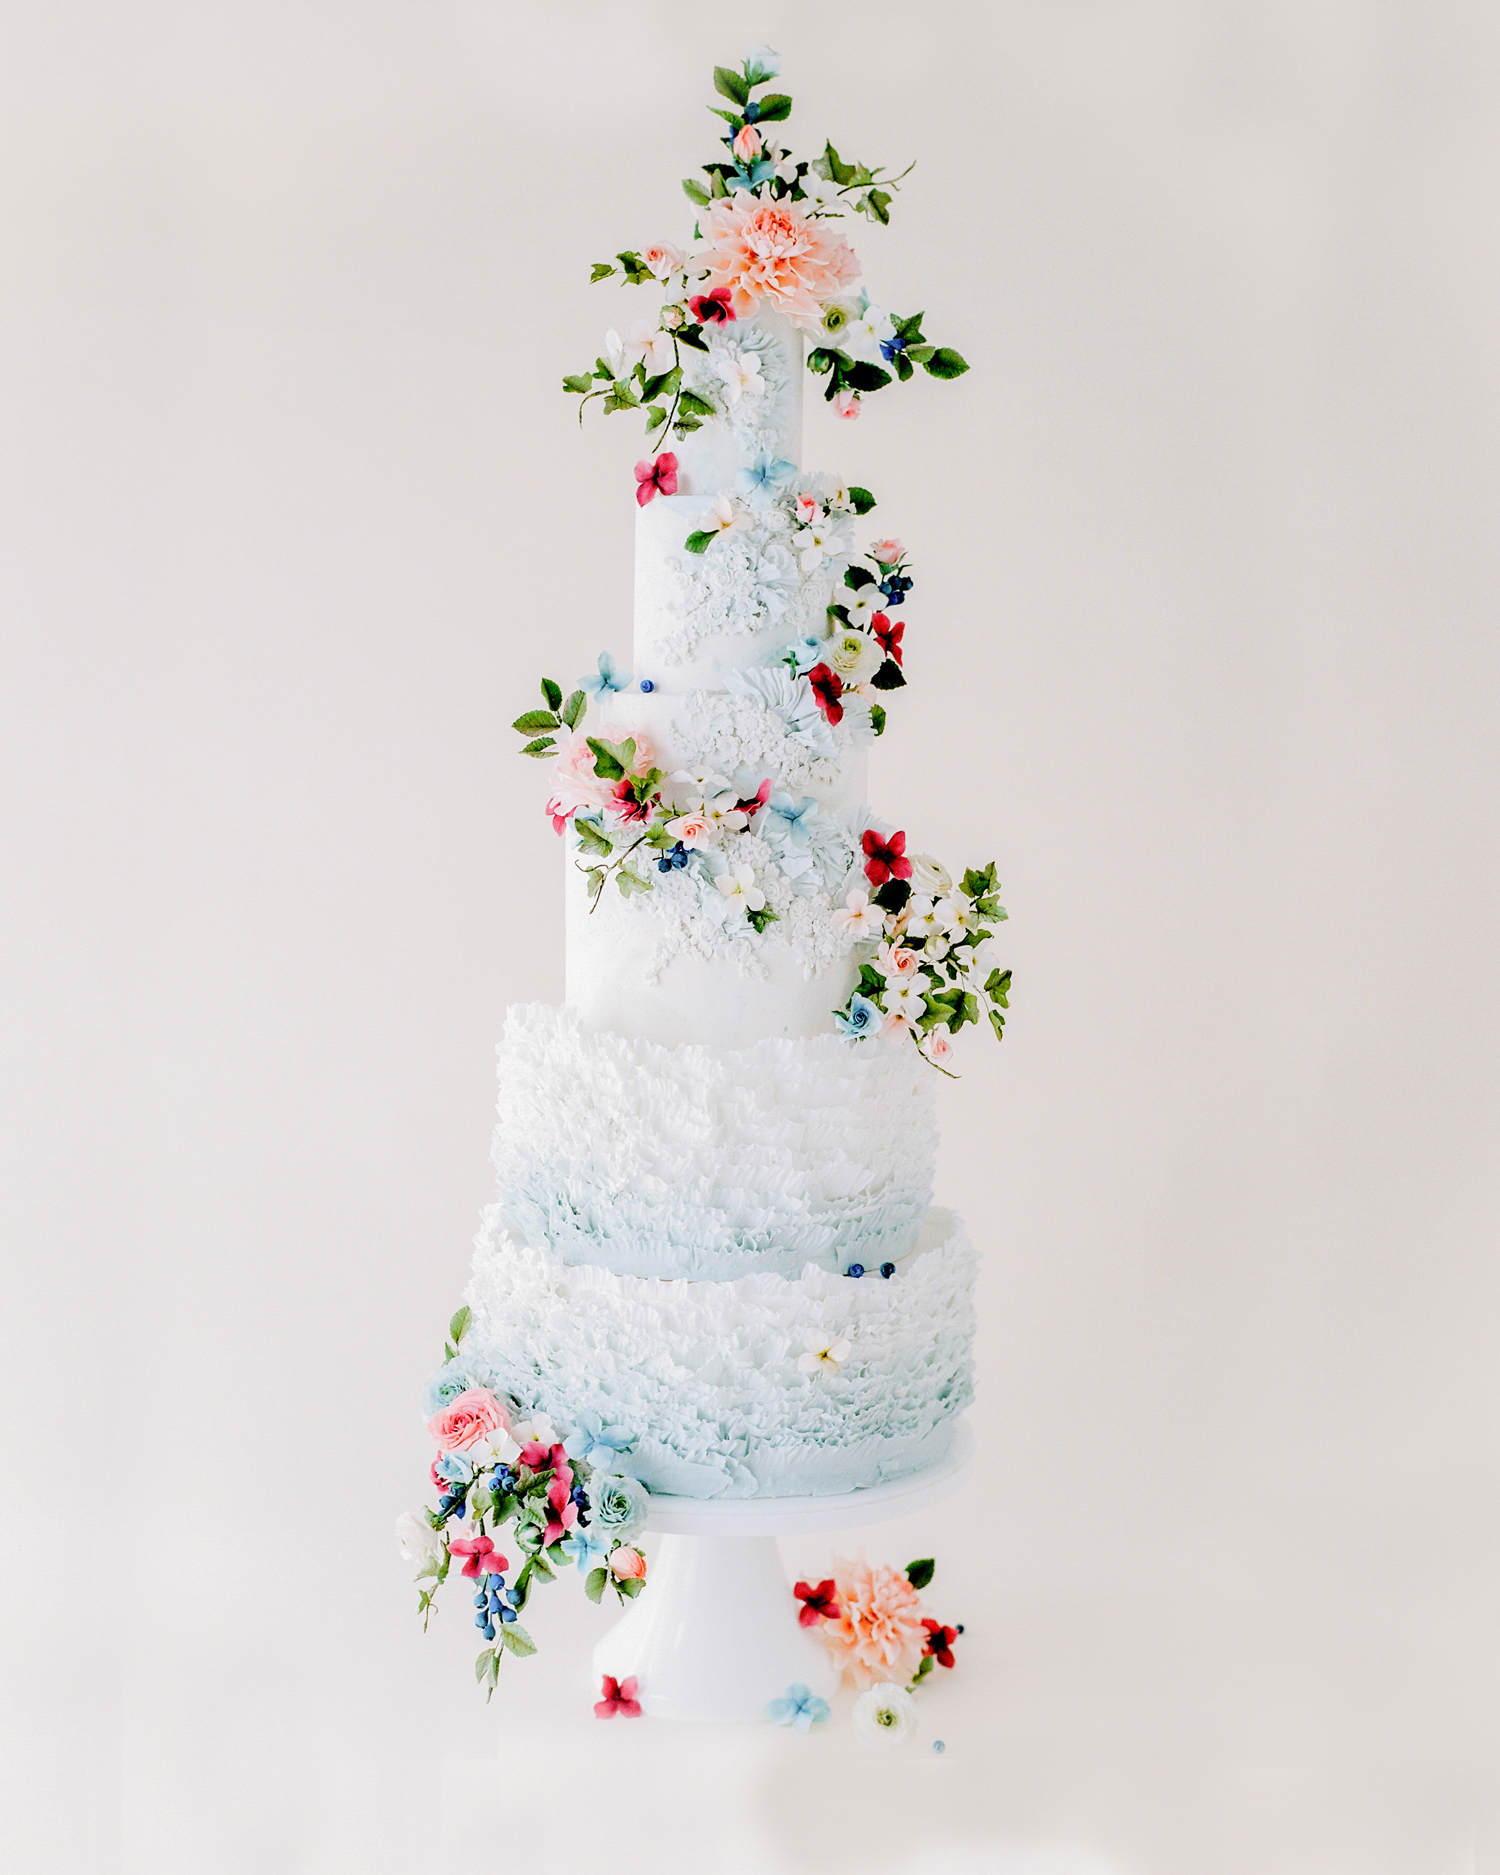 light blue wedding cake adorned with vibrant sugar flowers